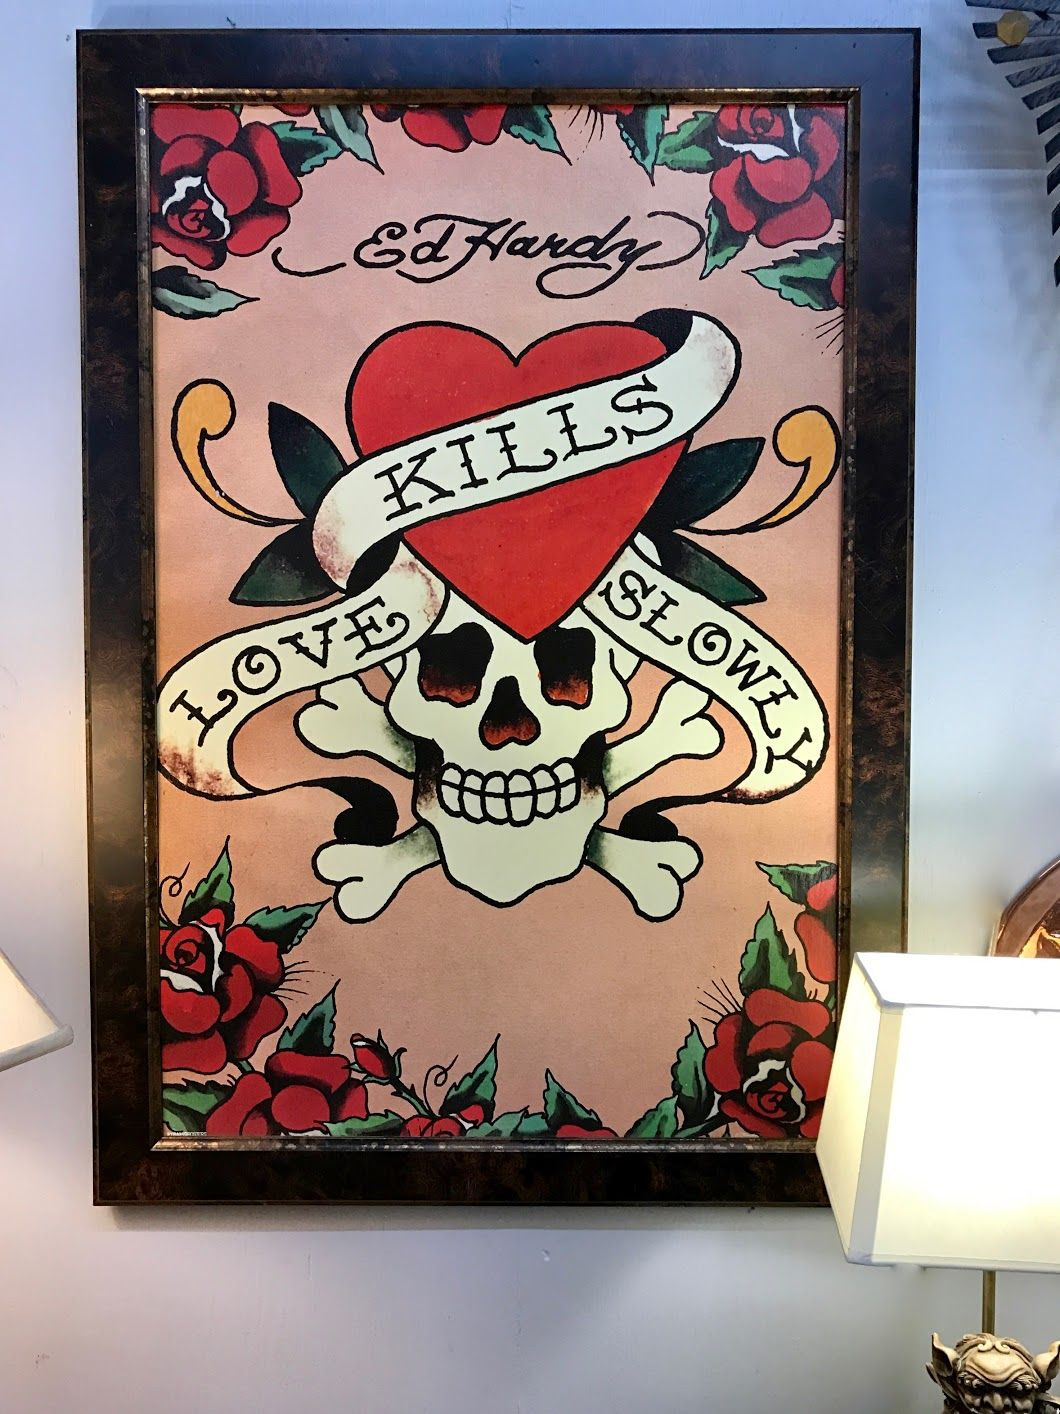 Ed Hardy Framed Print Dealer #0116 Lucas Street Antiques Mall 2023 Lucas  Dr. Dallas. Framed PrintsVintage Home DecorDallasStreetAntiques